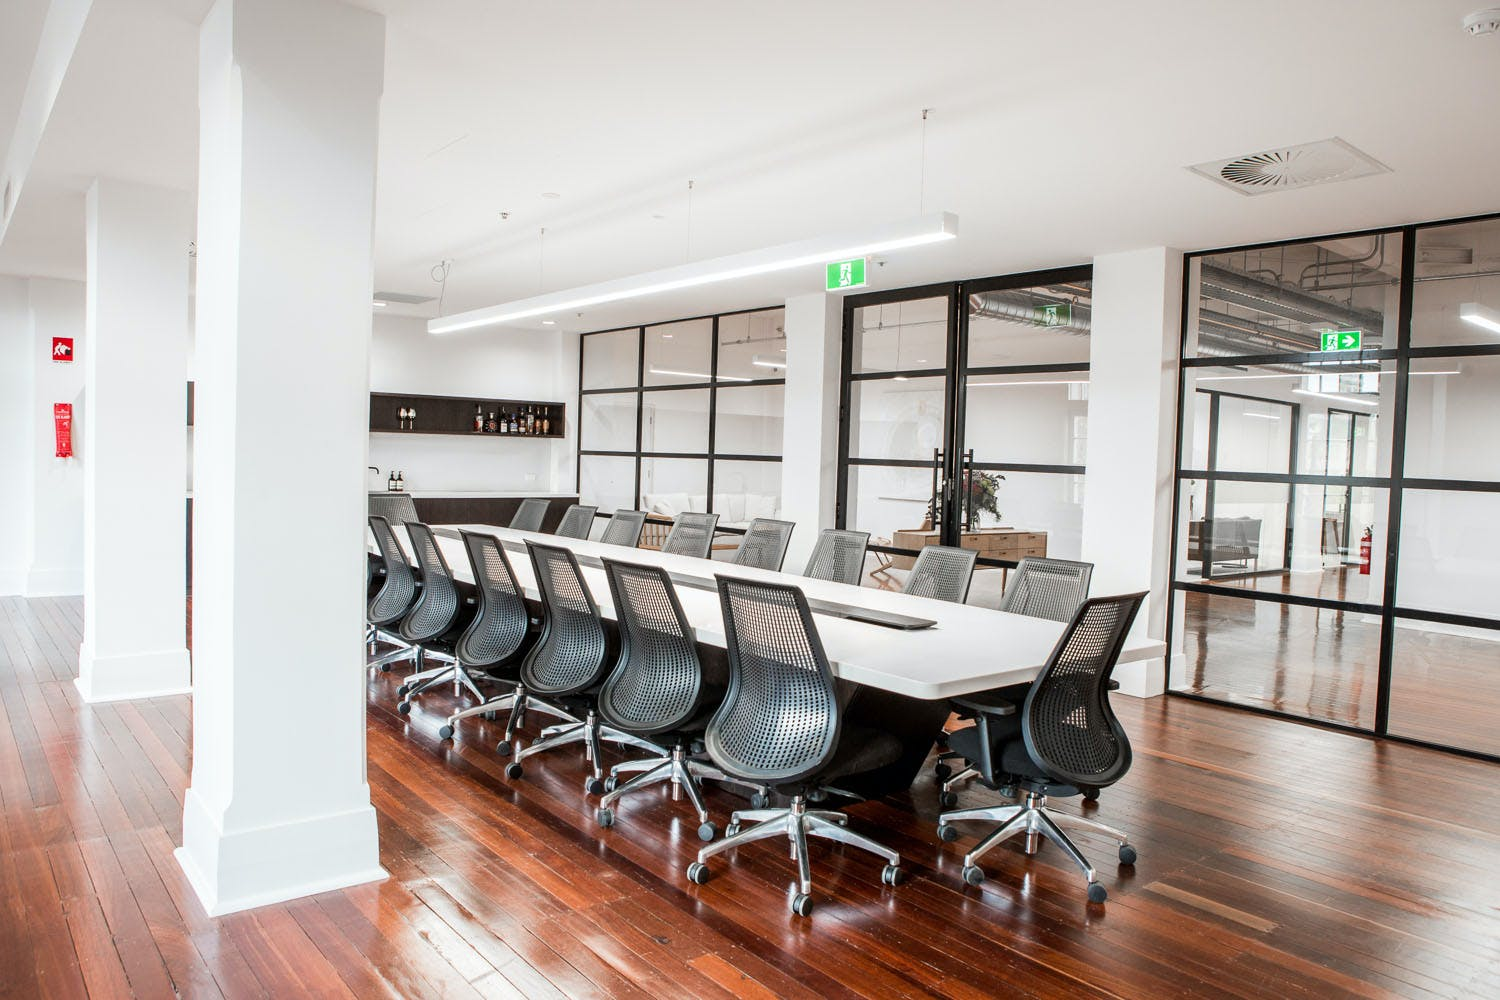 Meeting room at Security House, image 2